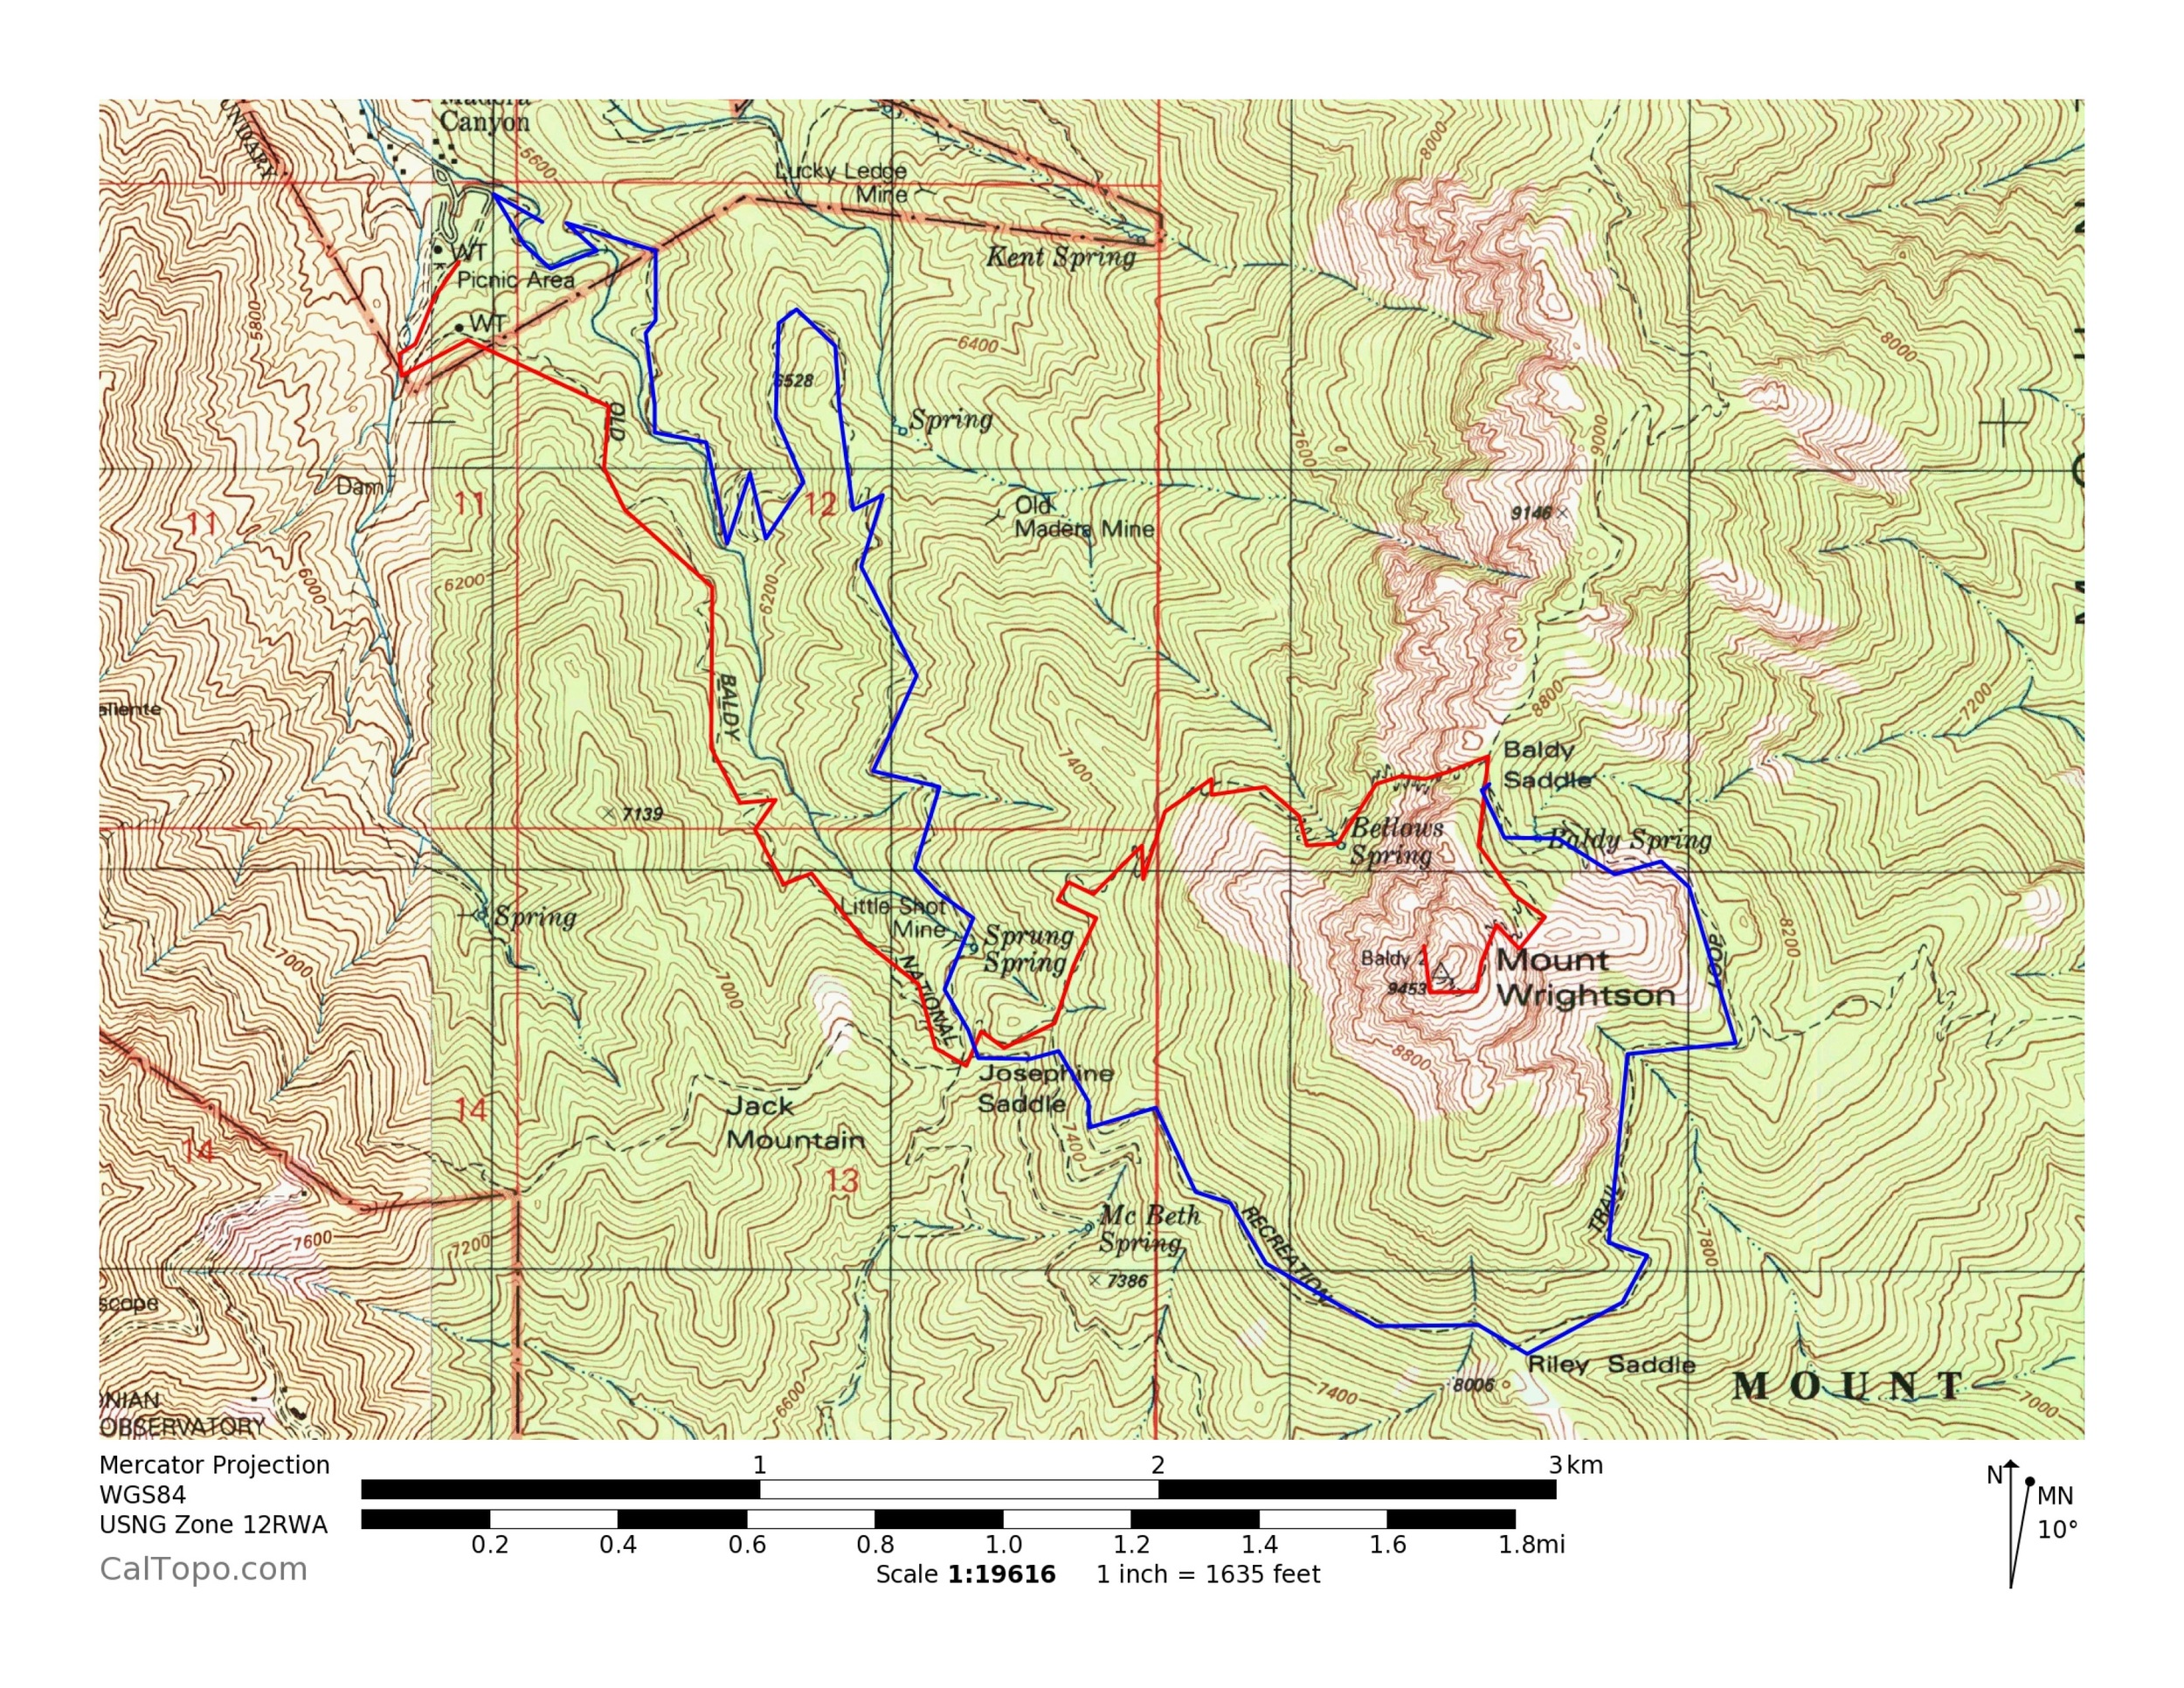 The two main trails up Mount Wrightson are shown here; the Old Baldy Trail in red and the Super Trail in blue.  The two trails cross at Josephine Saddle, and then join at Baldy Saddle.  Above Josephine Saddle, the Super Trail  gradually climbs around the south side of the peak, while the Old Baldy trail climbs steeply up the north side.  There is one trail for the final climb from Baldy Saddle to the summit (shown in red).